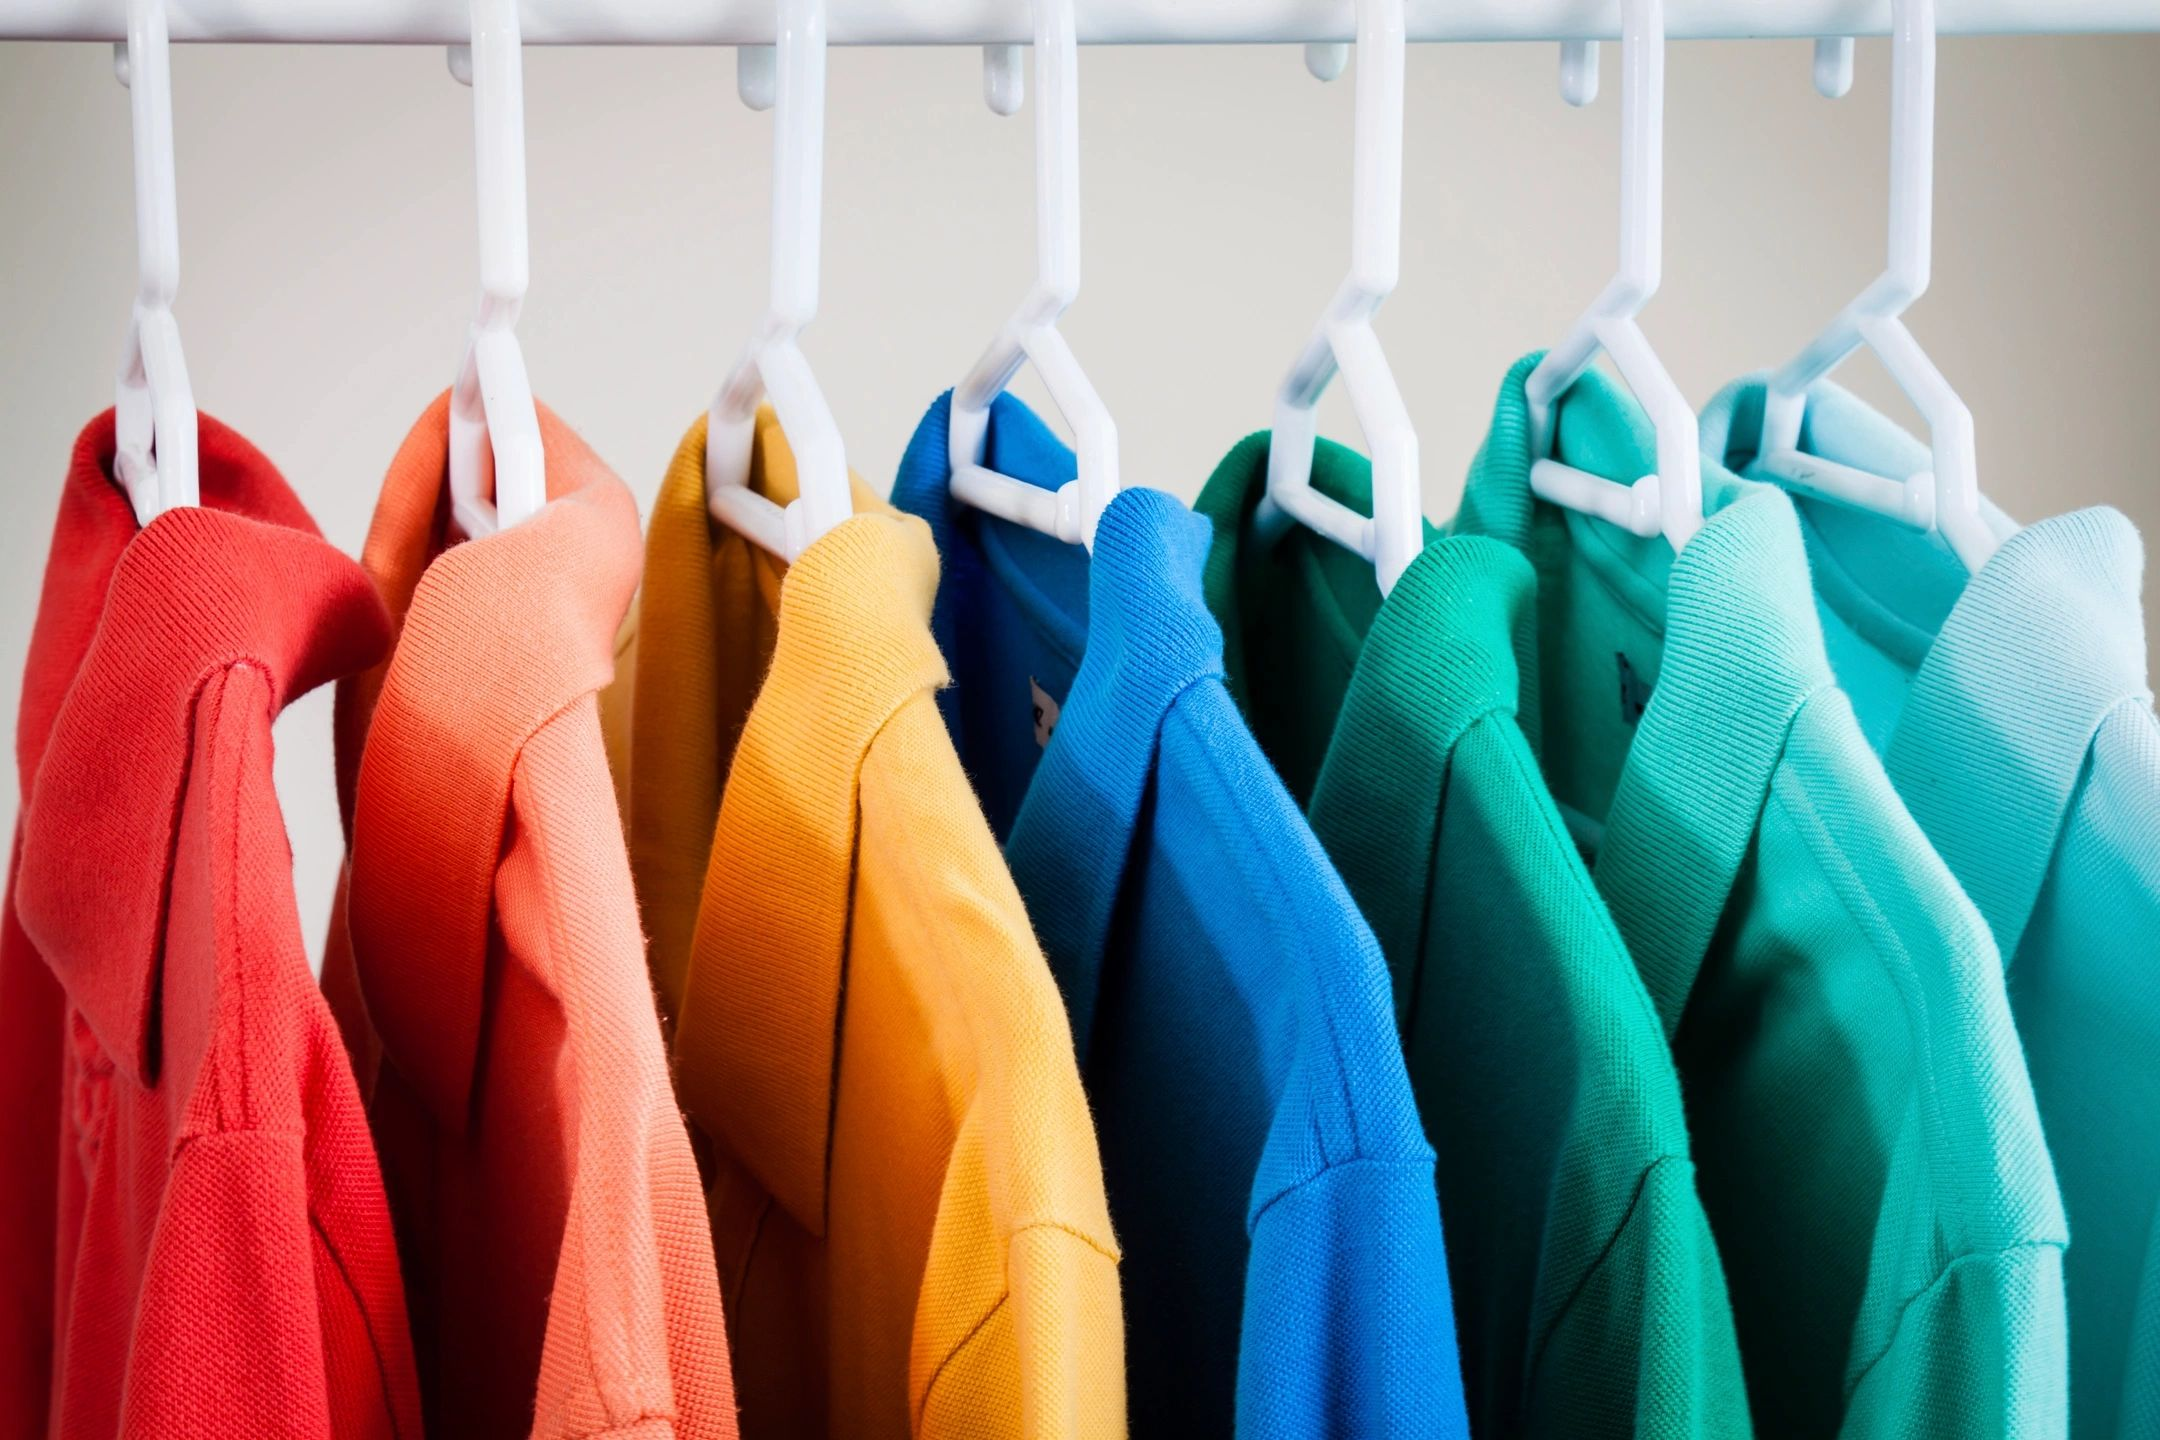 rainbow of shirts, hangers with multiple dry cleaned shirts, white hangers,